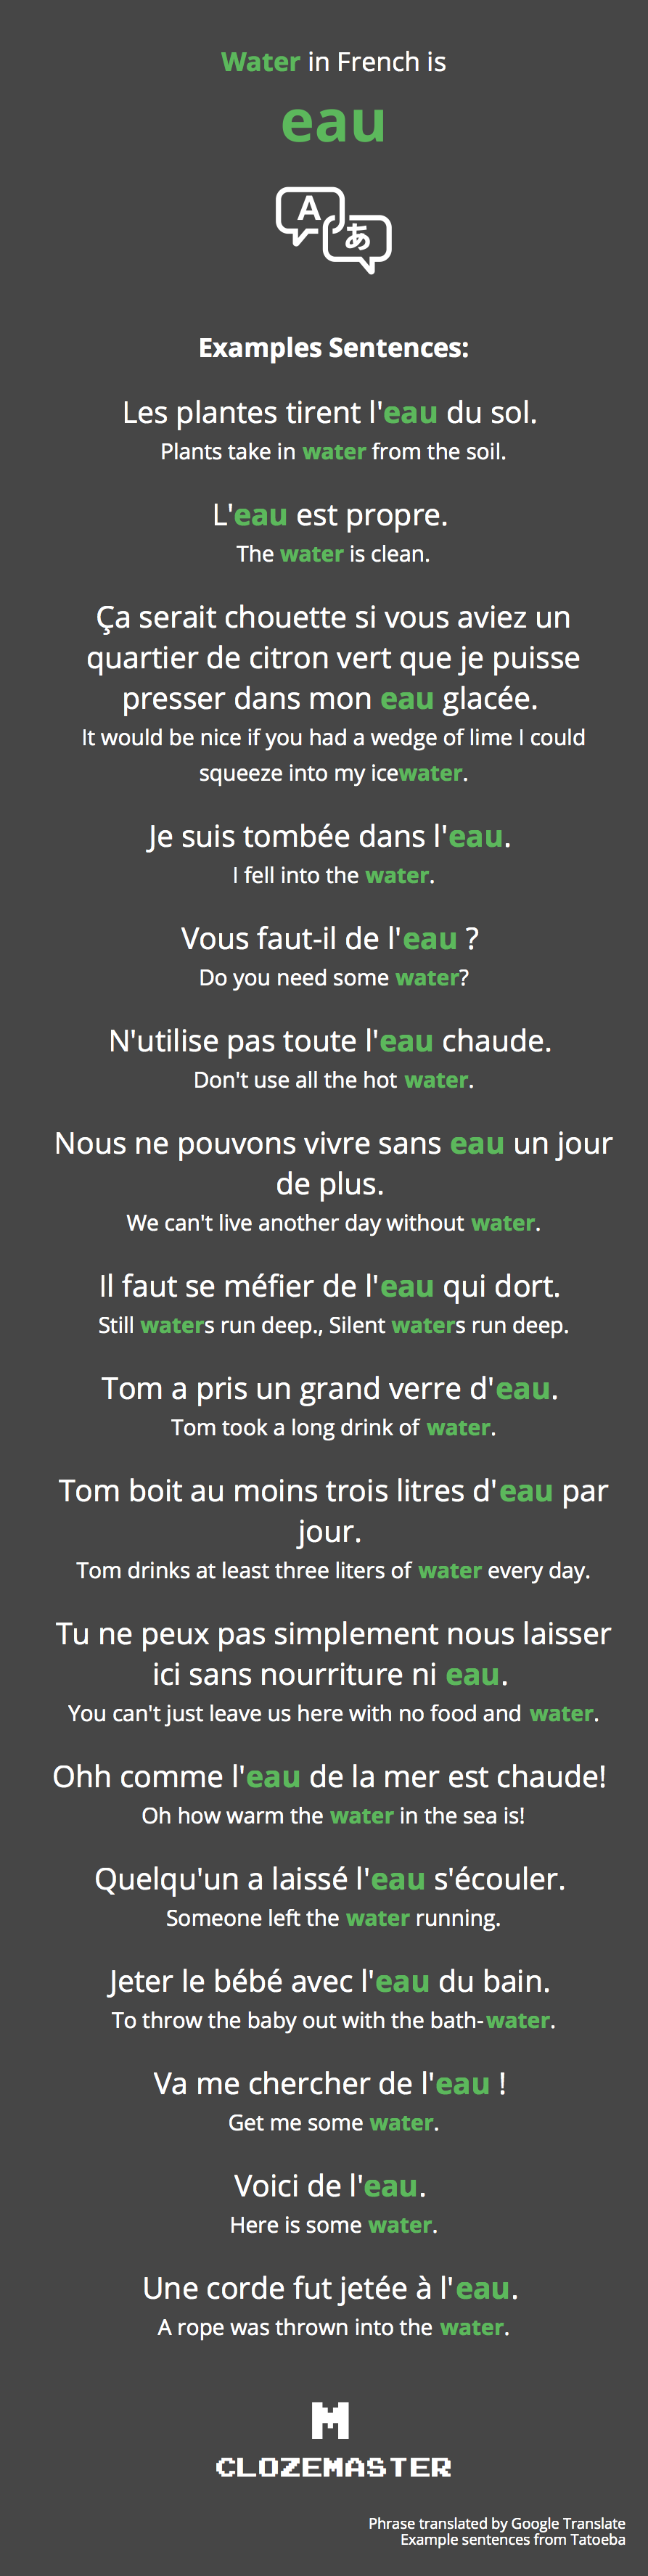 How to Say Water in French - Clozemaster